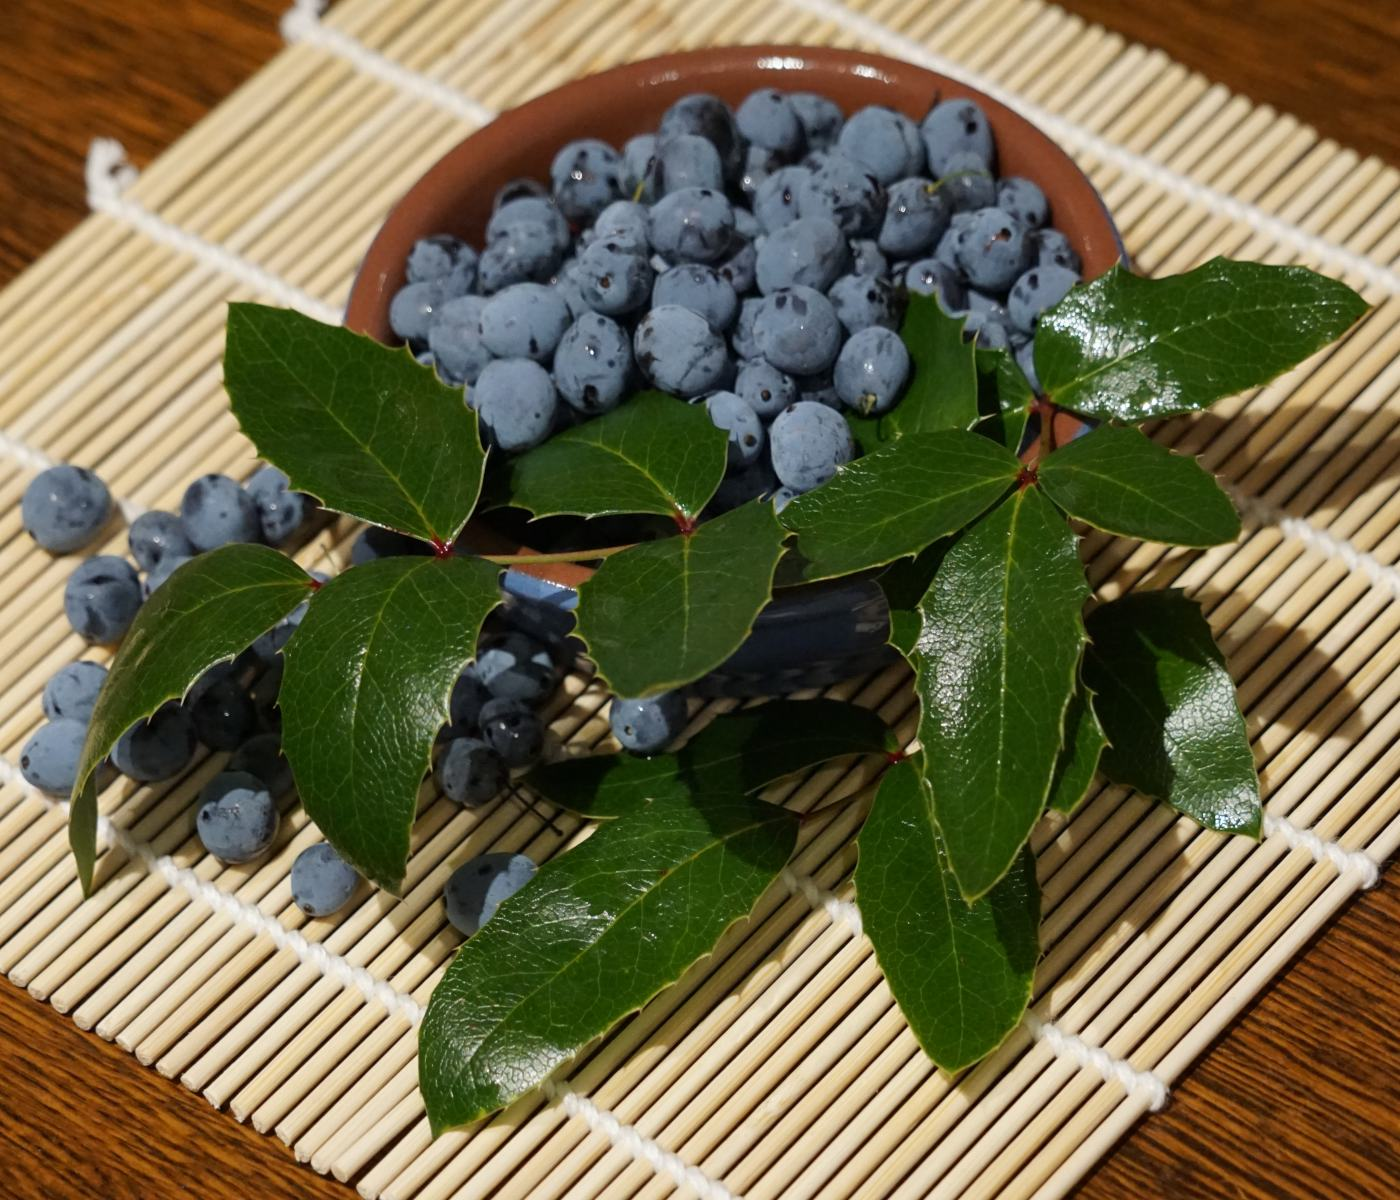 Bowl of Mahonia berries with leaves on wicker mat.